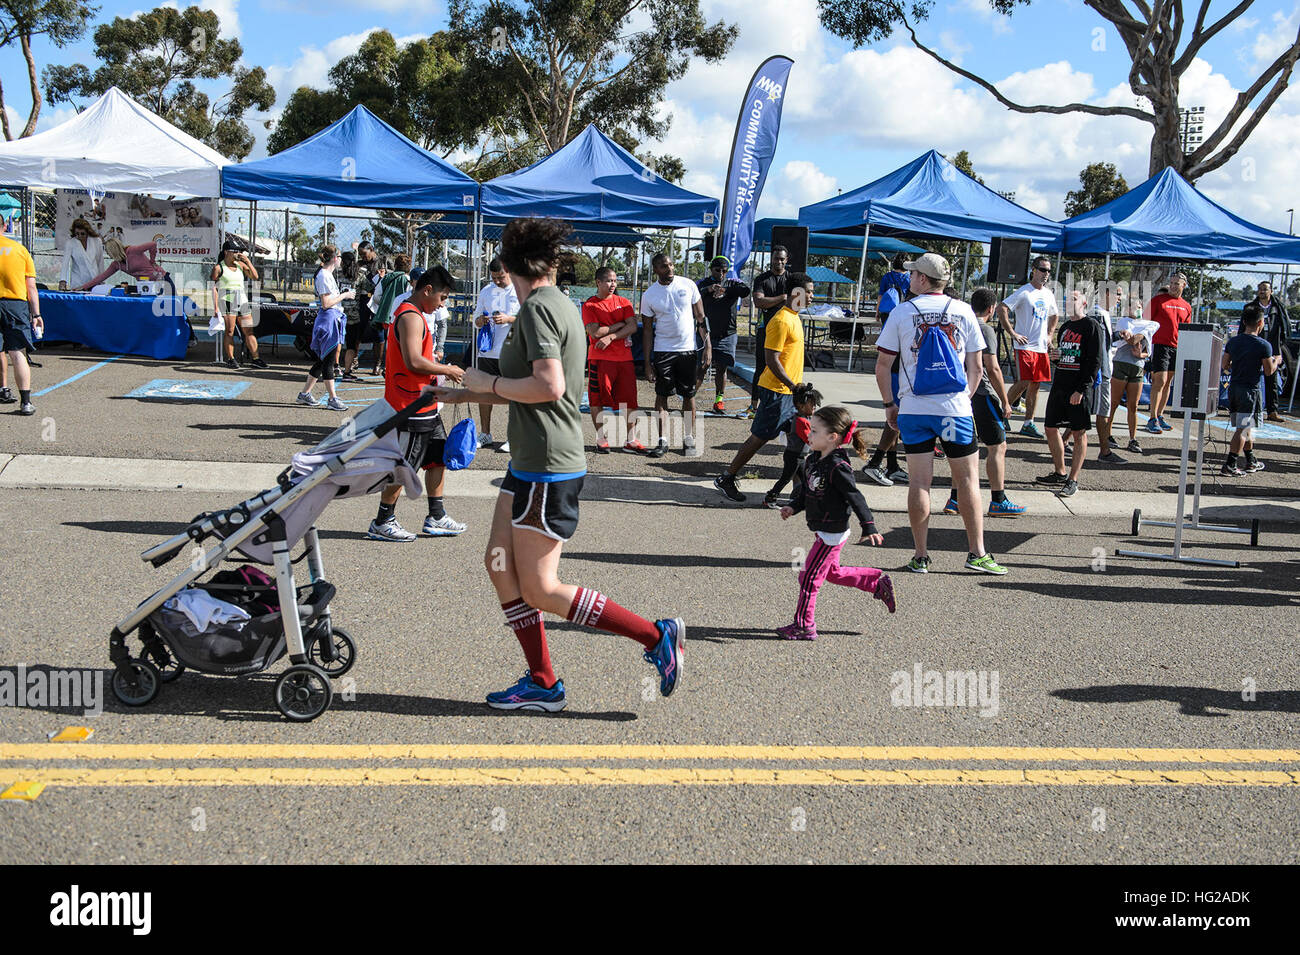 NAVAL BASE SAN DIEGO (Nov. 10, 2015) Servicemembers, family and friends take part in a MWR Veterans Day run or walk. - Stock Image